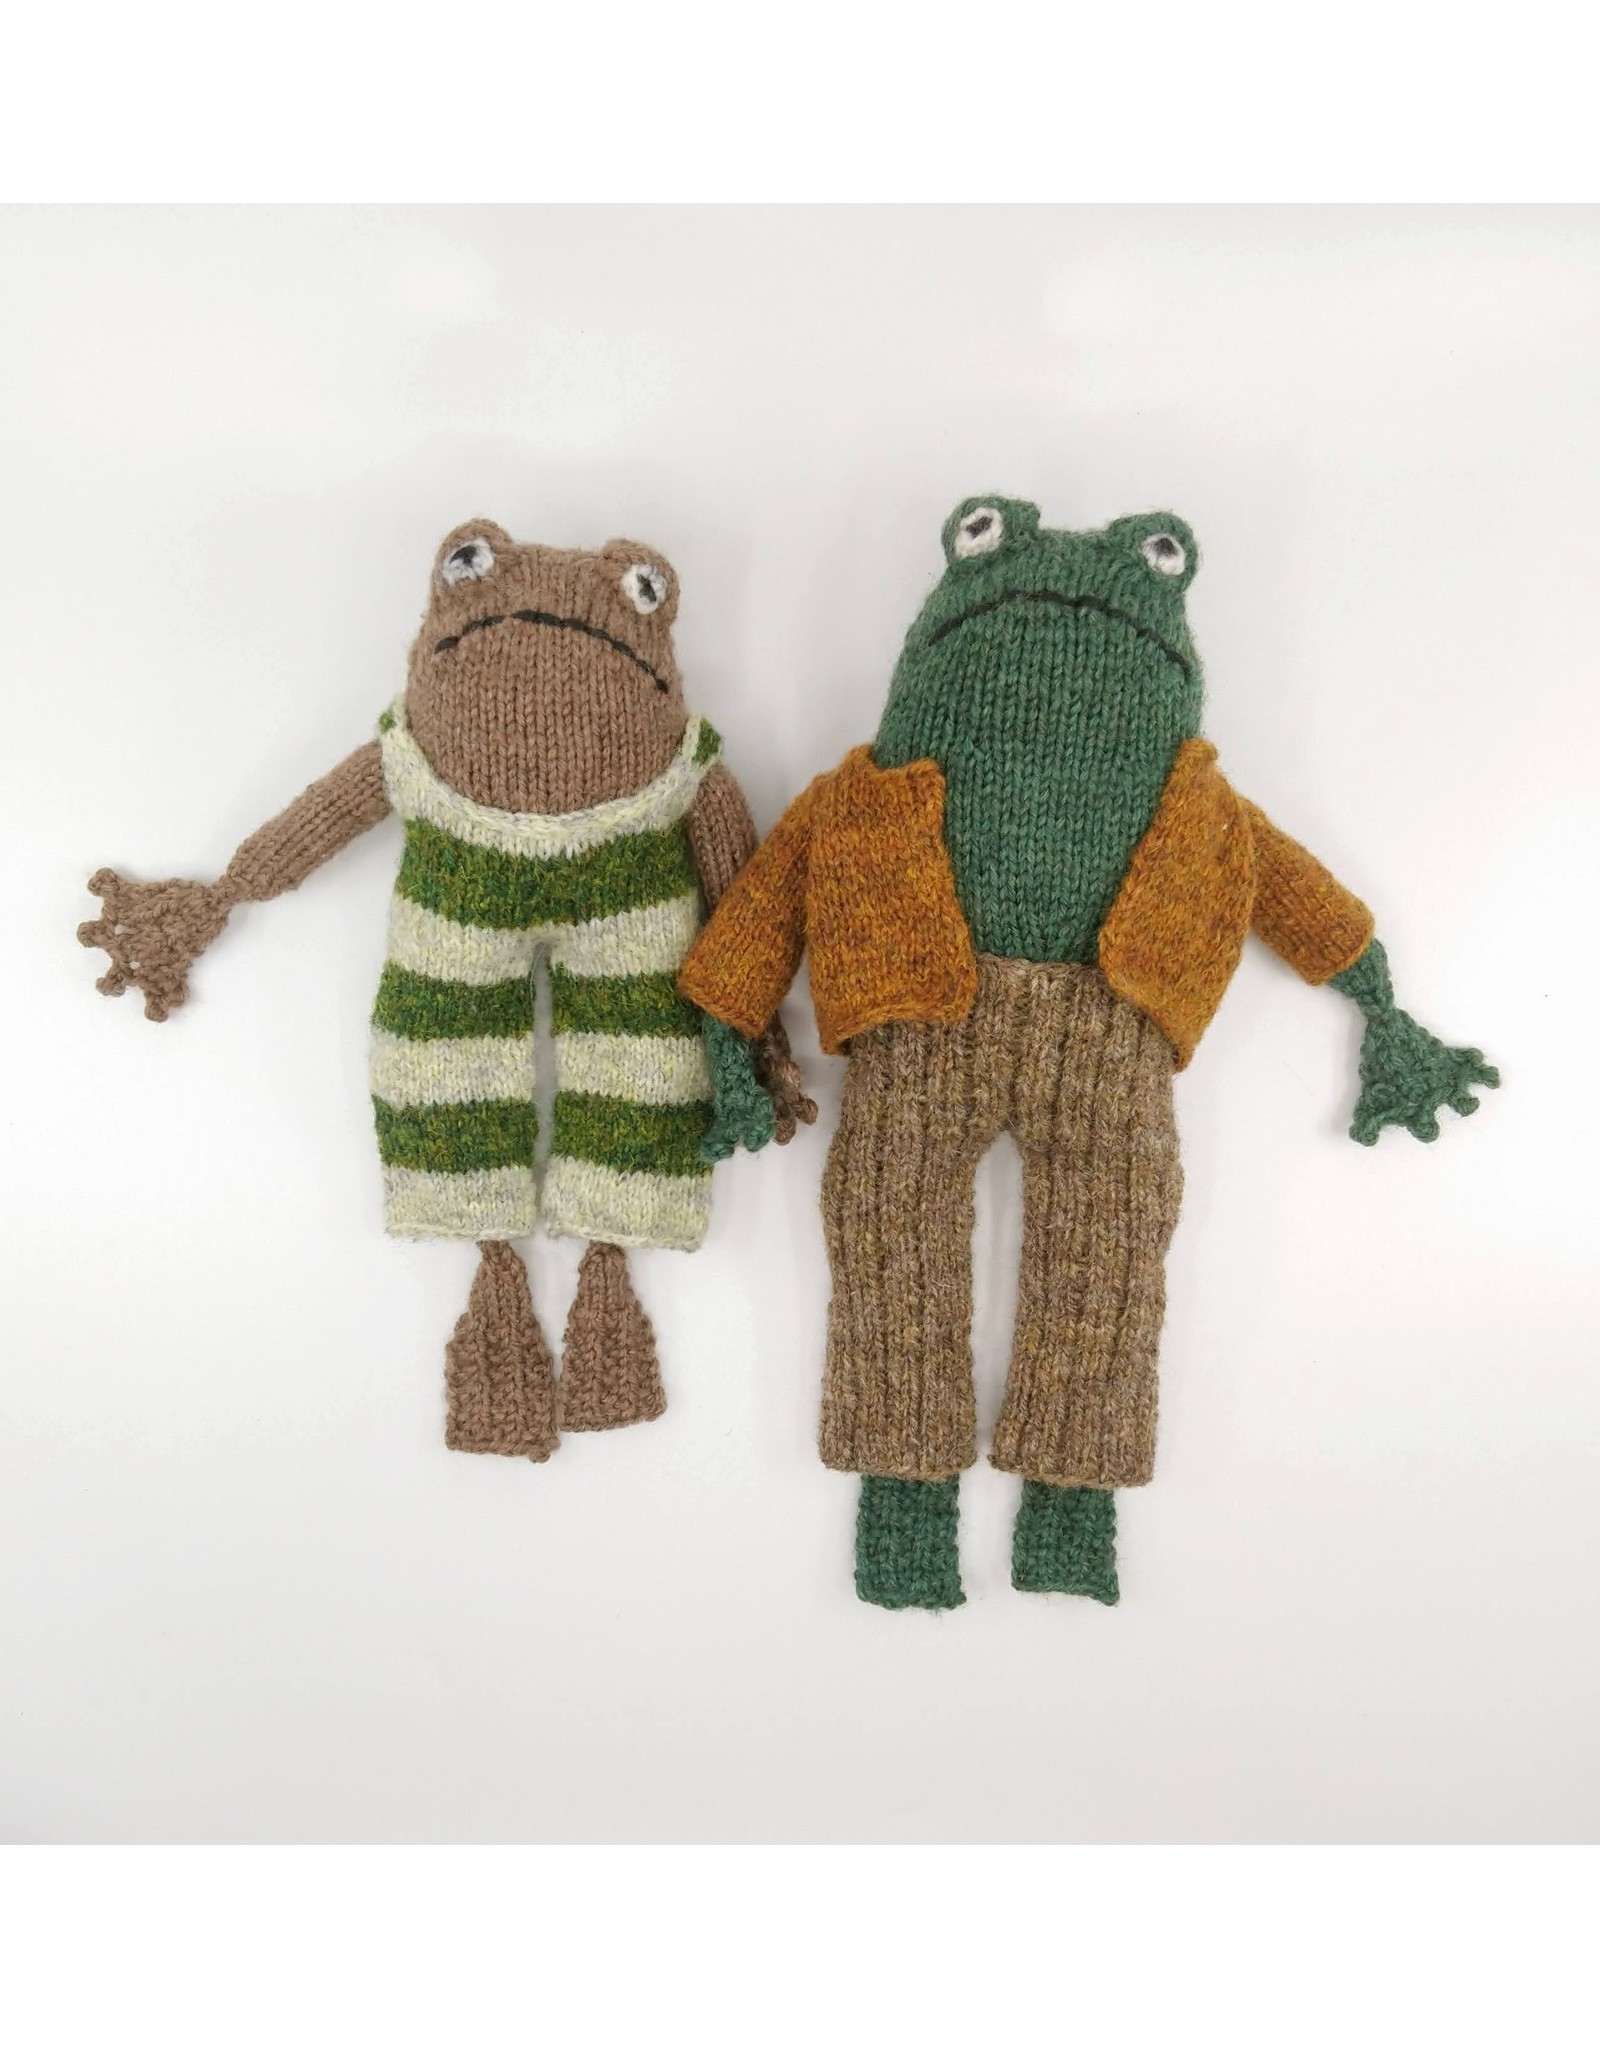 Stranded by the Sea Frog and Toad Knitting Kit